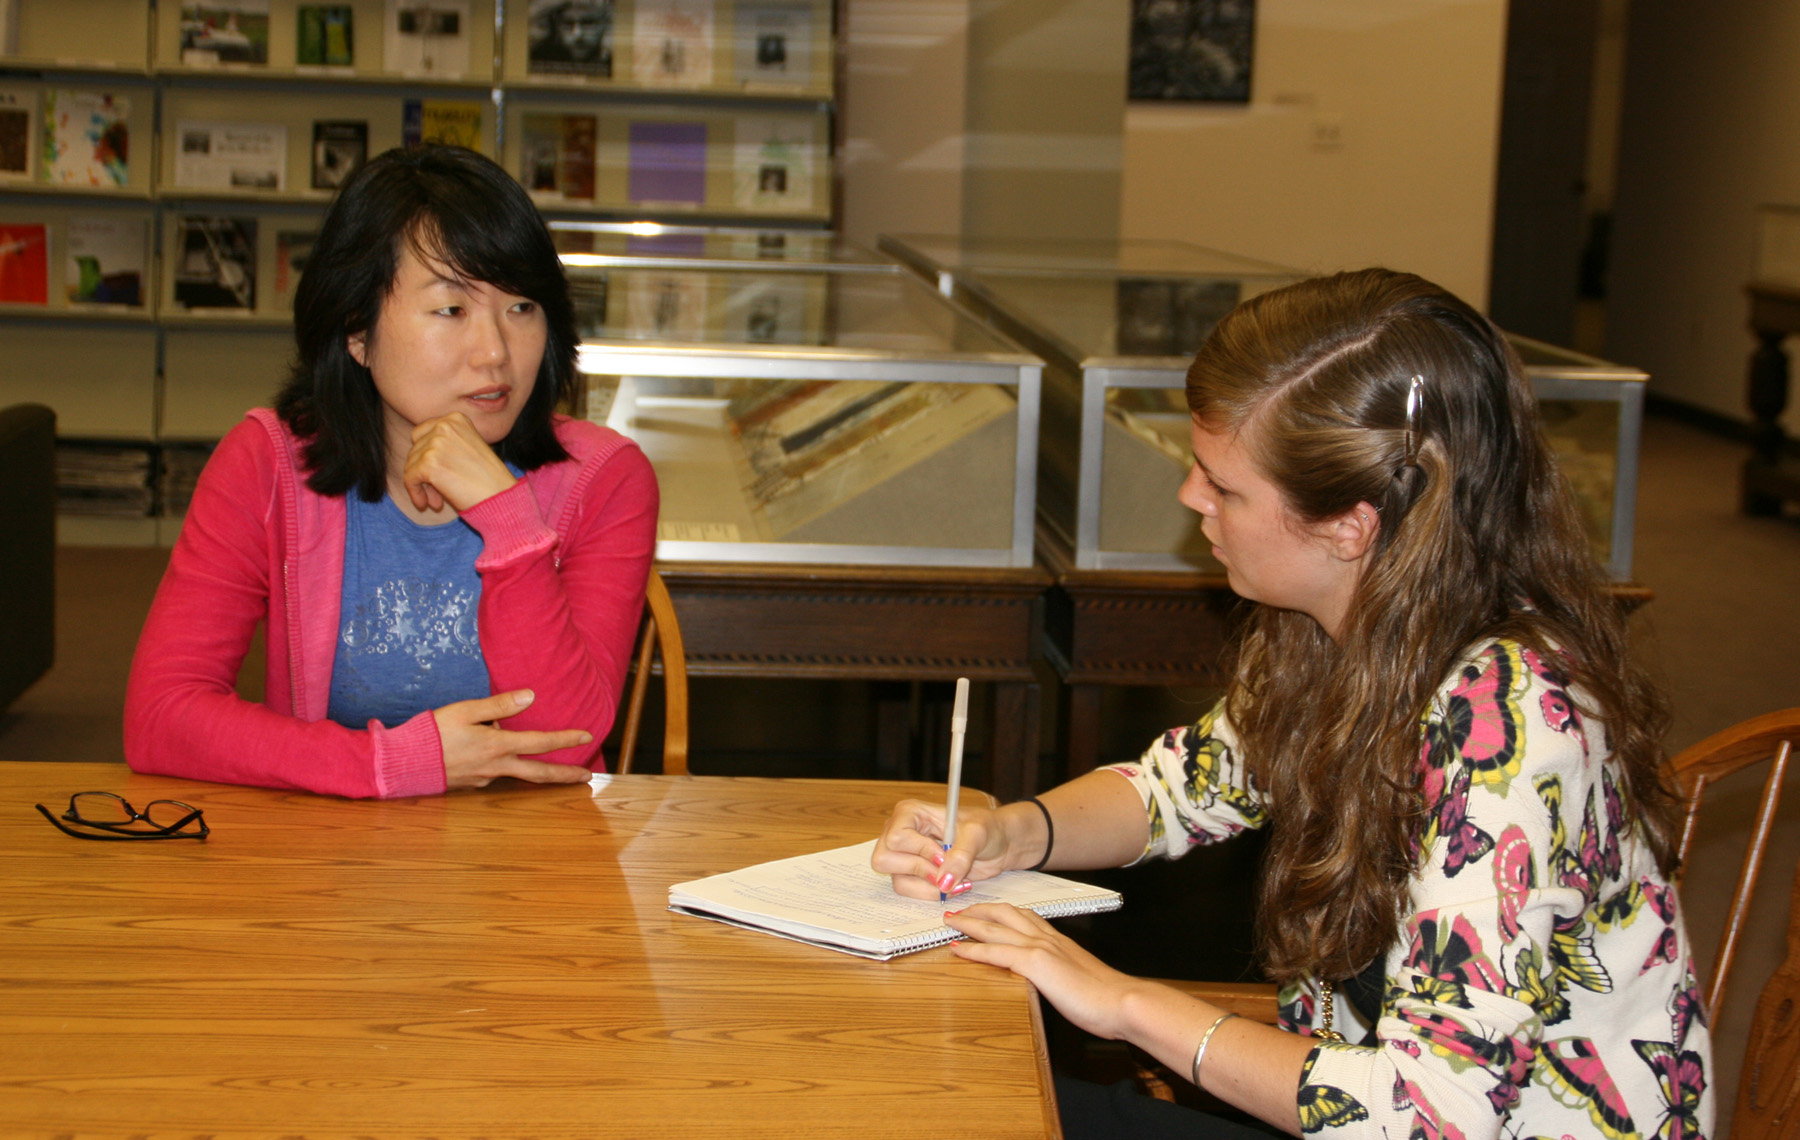 JuYeon Kim and Ginny DeLacey chat about Kim's art in NMWA's library.